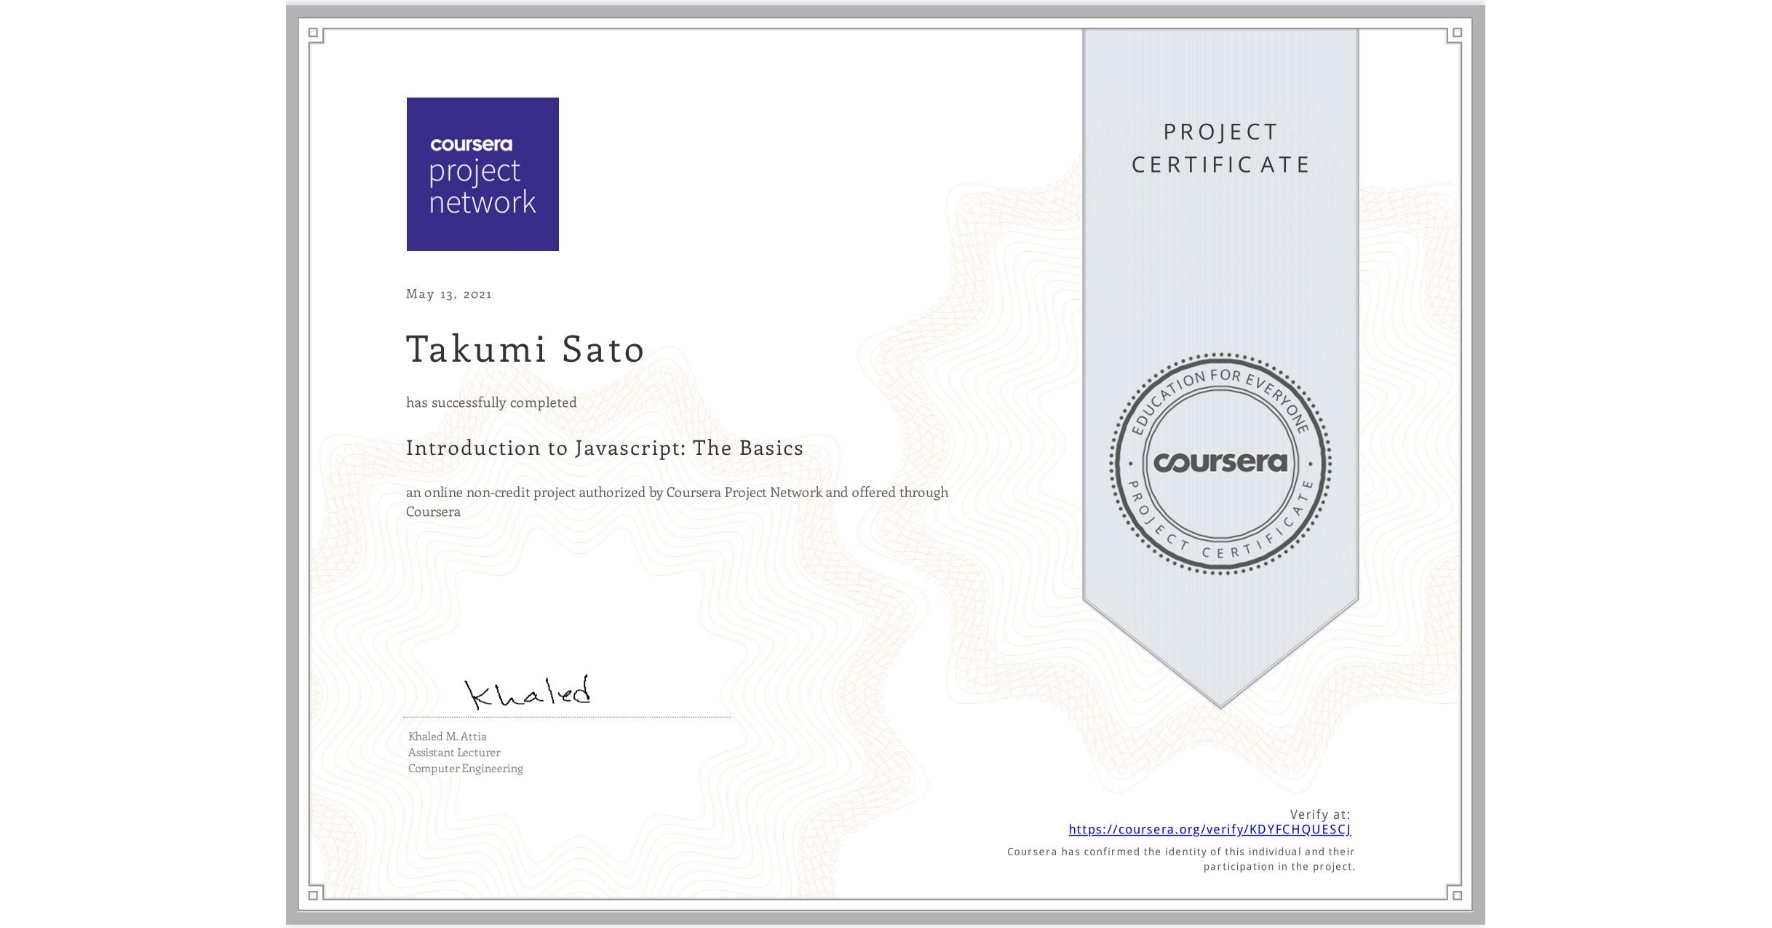 View certificate for Takumi Sato, Introduction to Javascript: The Basics, an online non-credit course authorized by Coursera Project Network and offered through Coursera